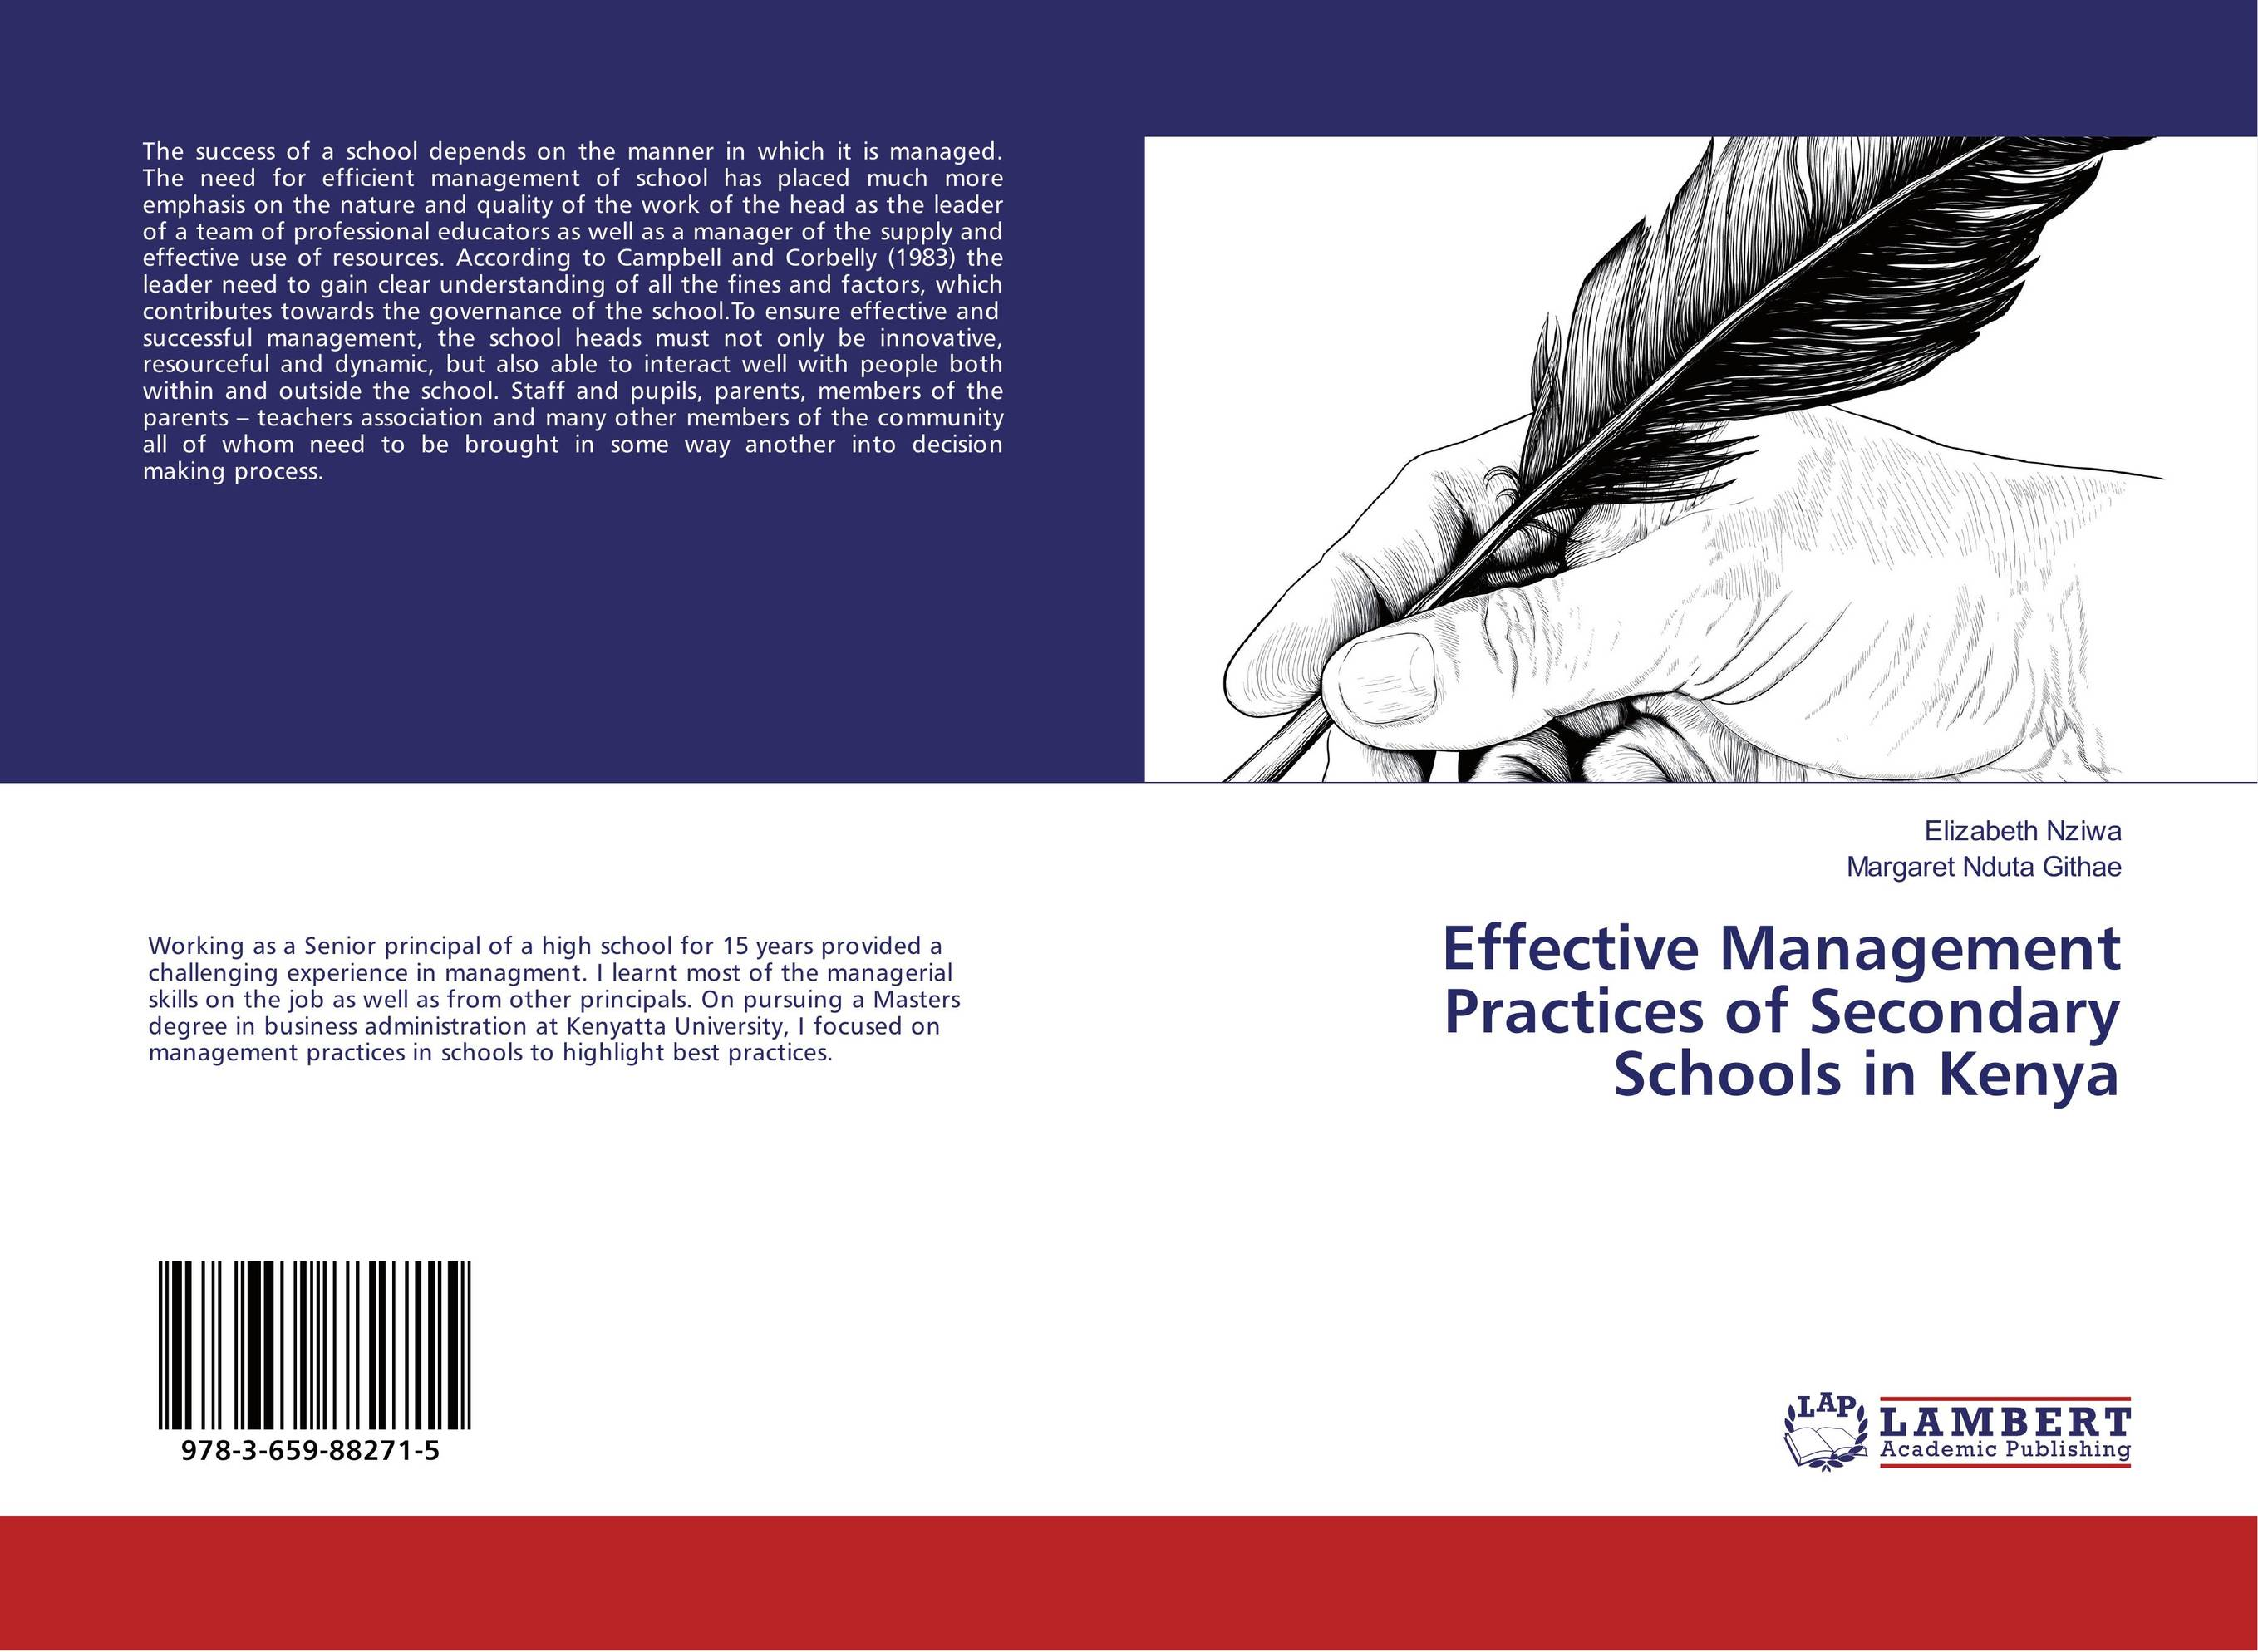 Effective Management Practices of Secondary Schools in Kenya the analysis of management of schools